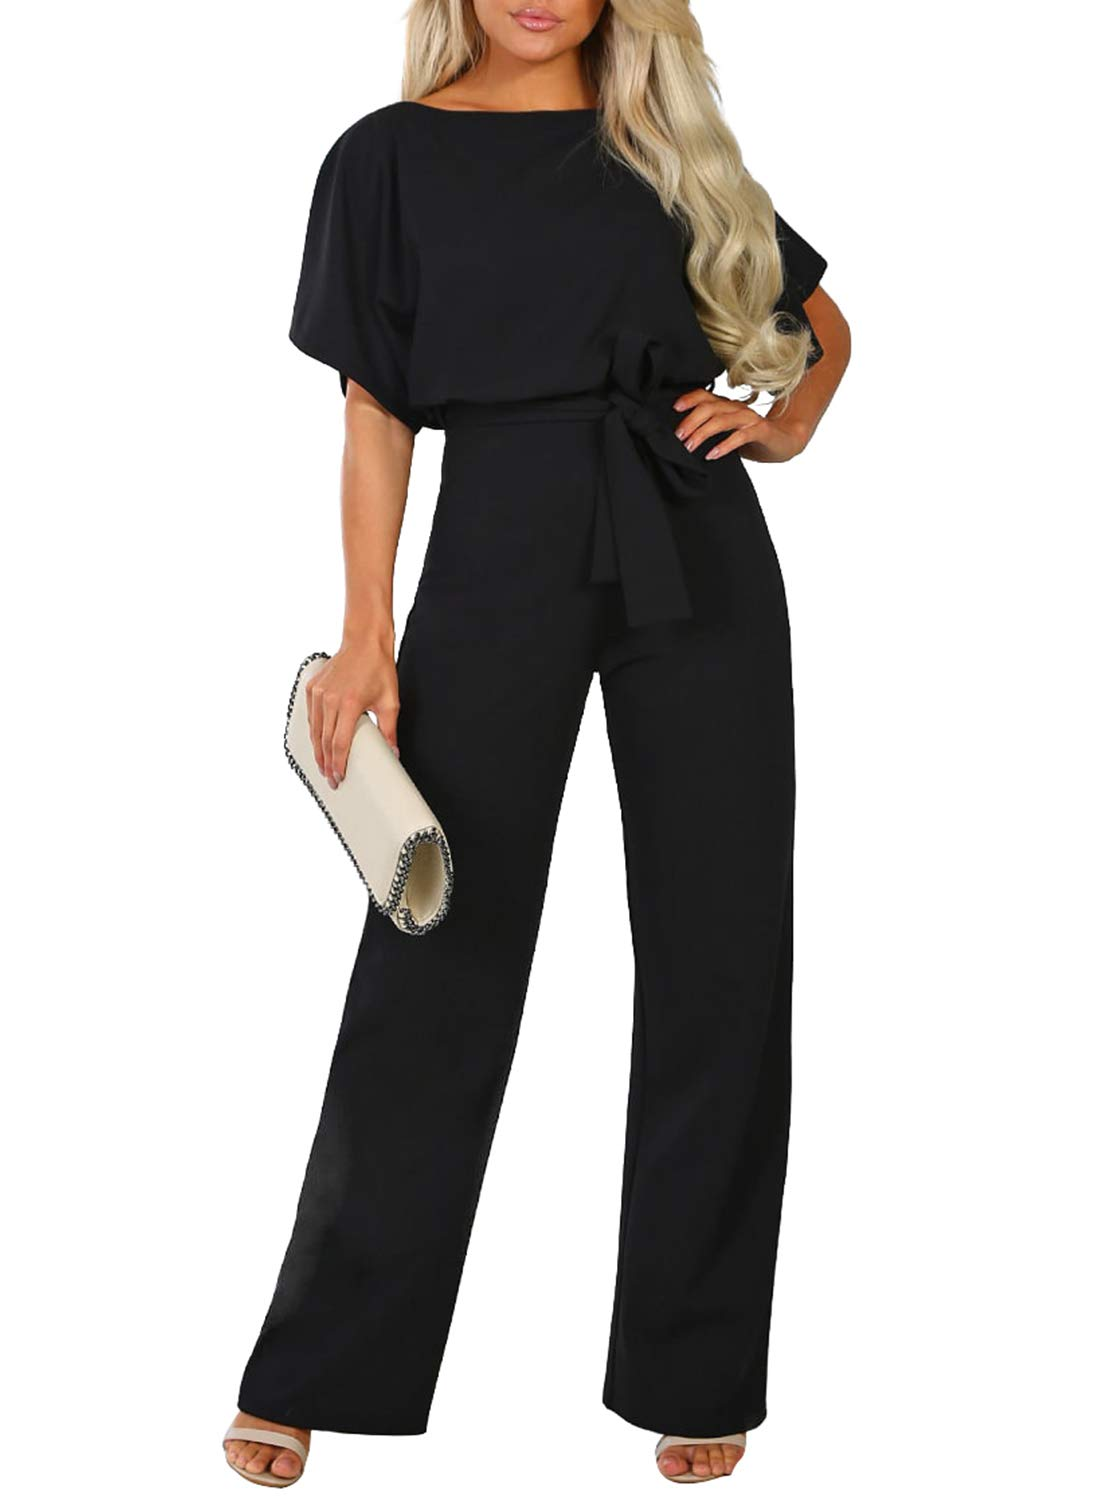 Happy Sailed Women Casual Loose Short Sleeve Belted Wide Leg Pant Romper Jumpsuits X-Large Black by Happy Sailed